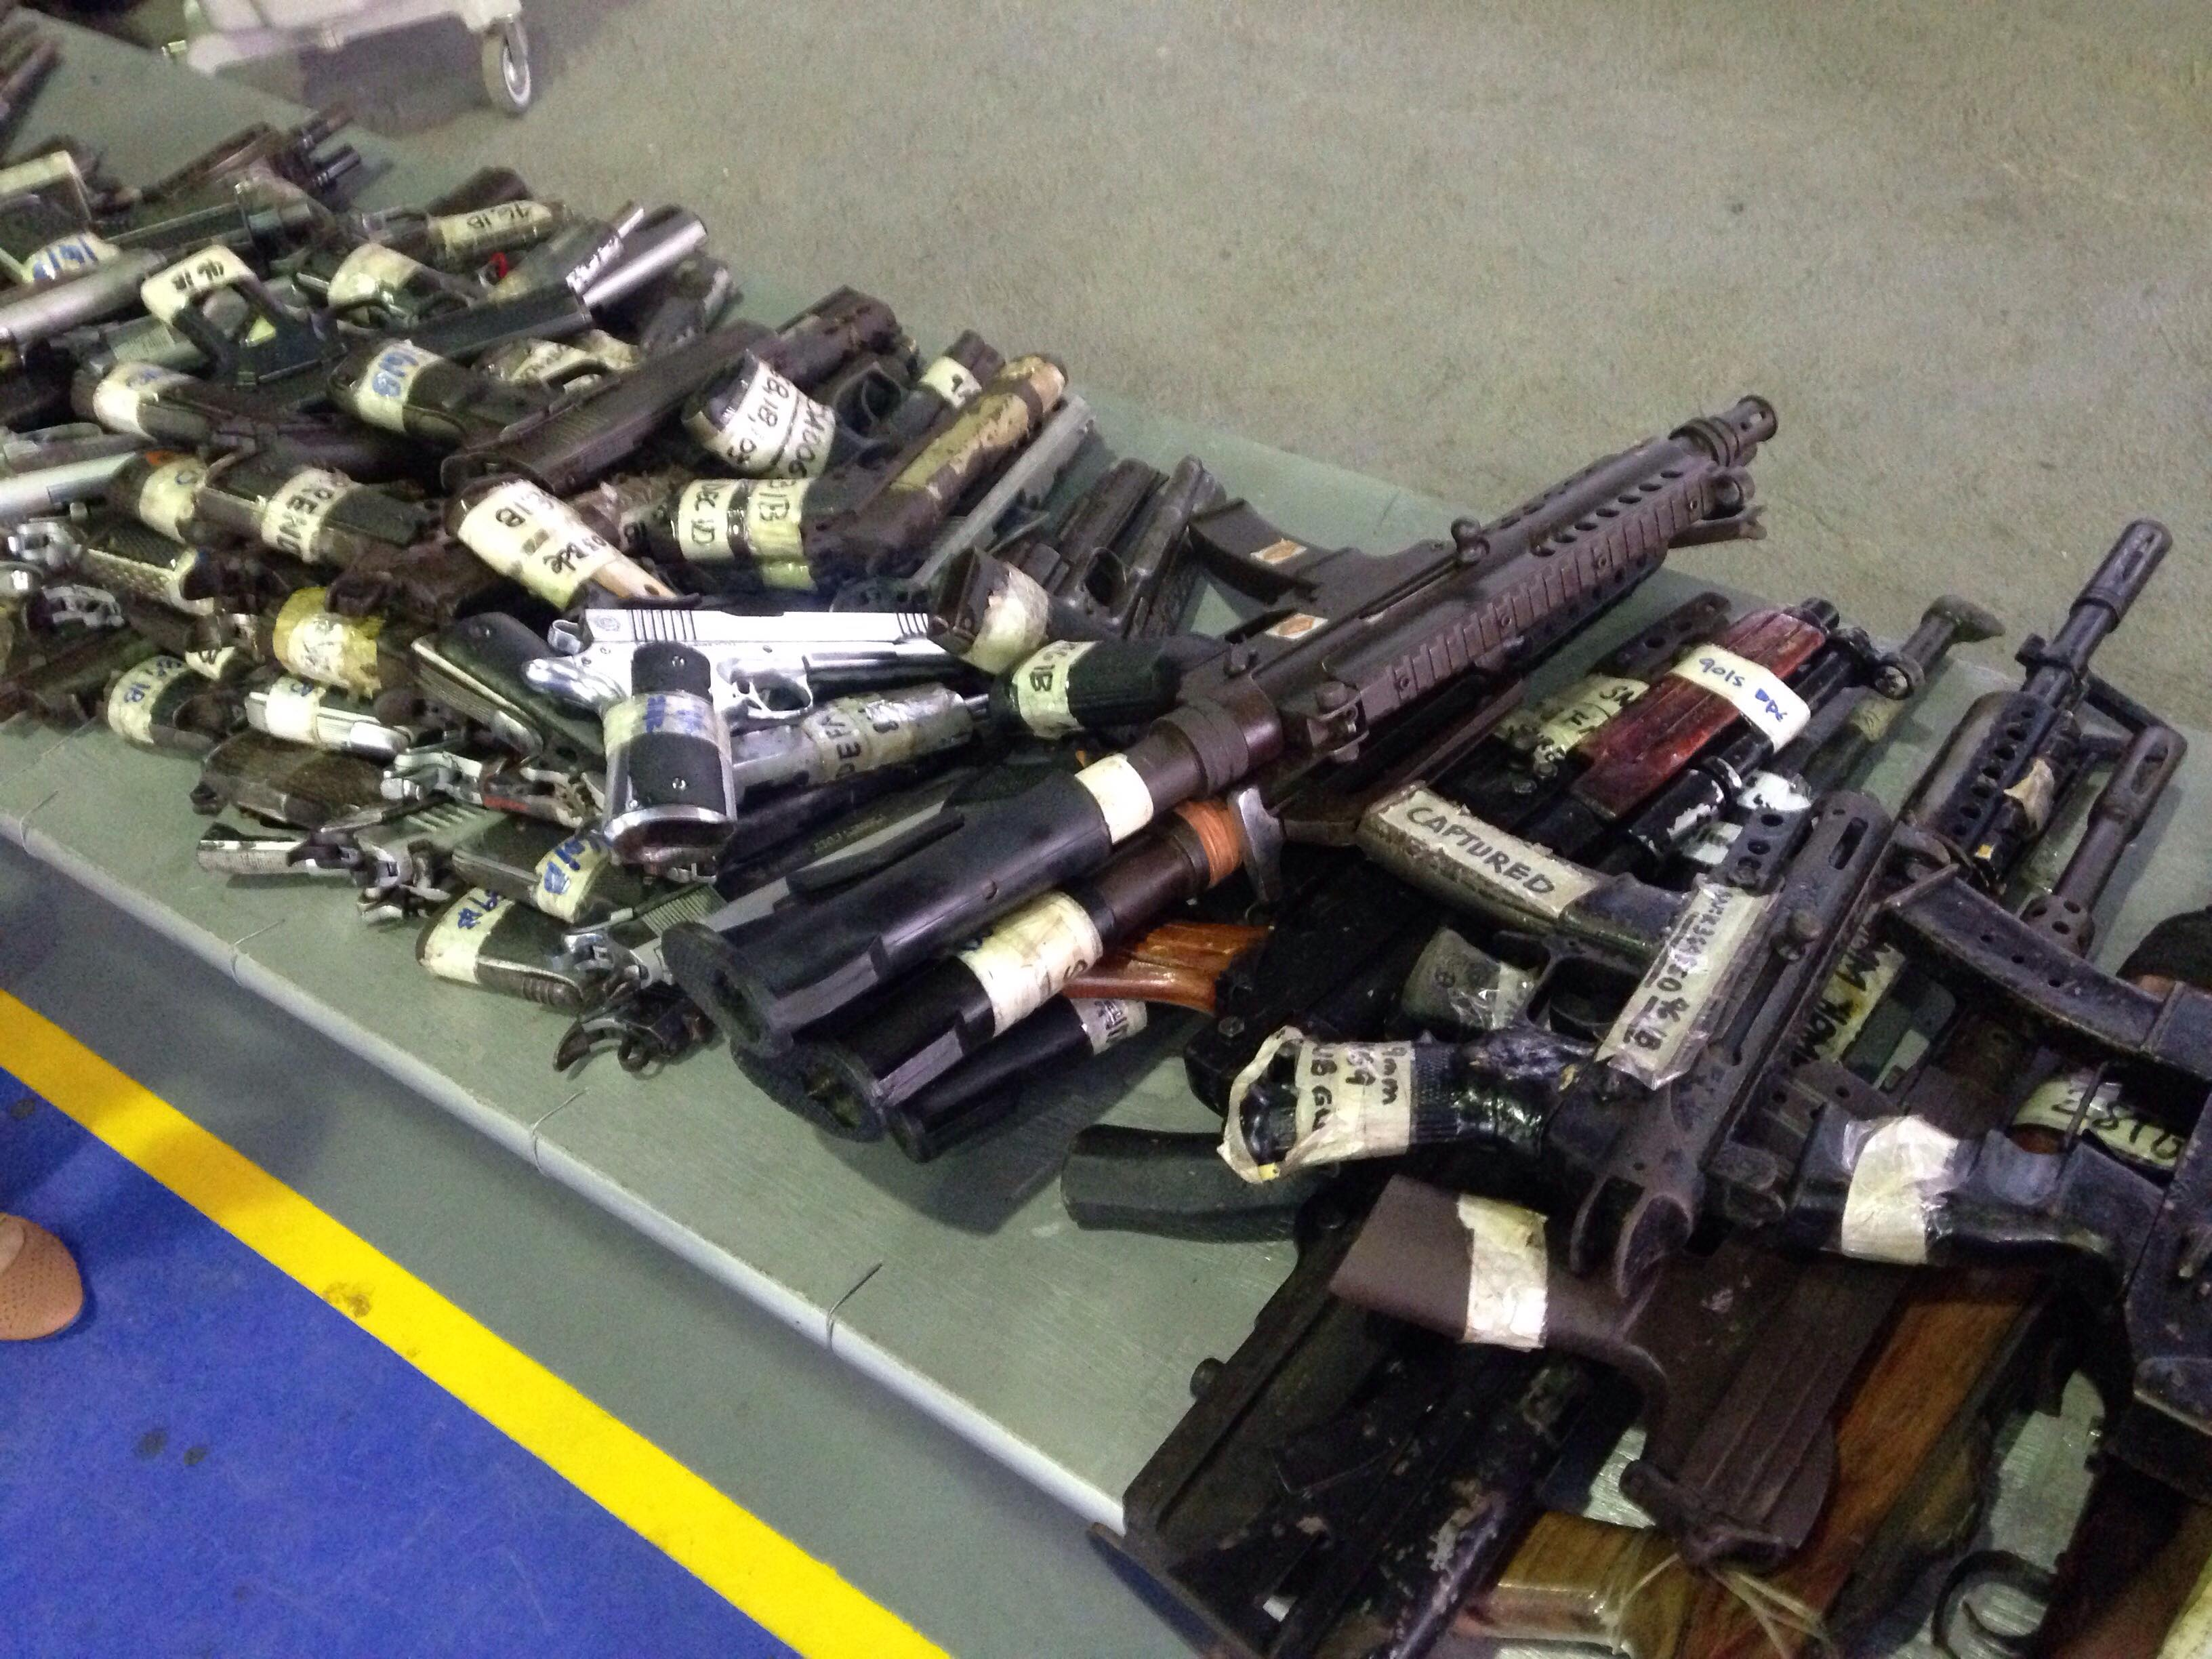 Army operations versus NPAs netted 1,141 guns - Edge Davao